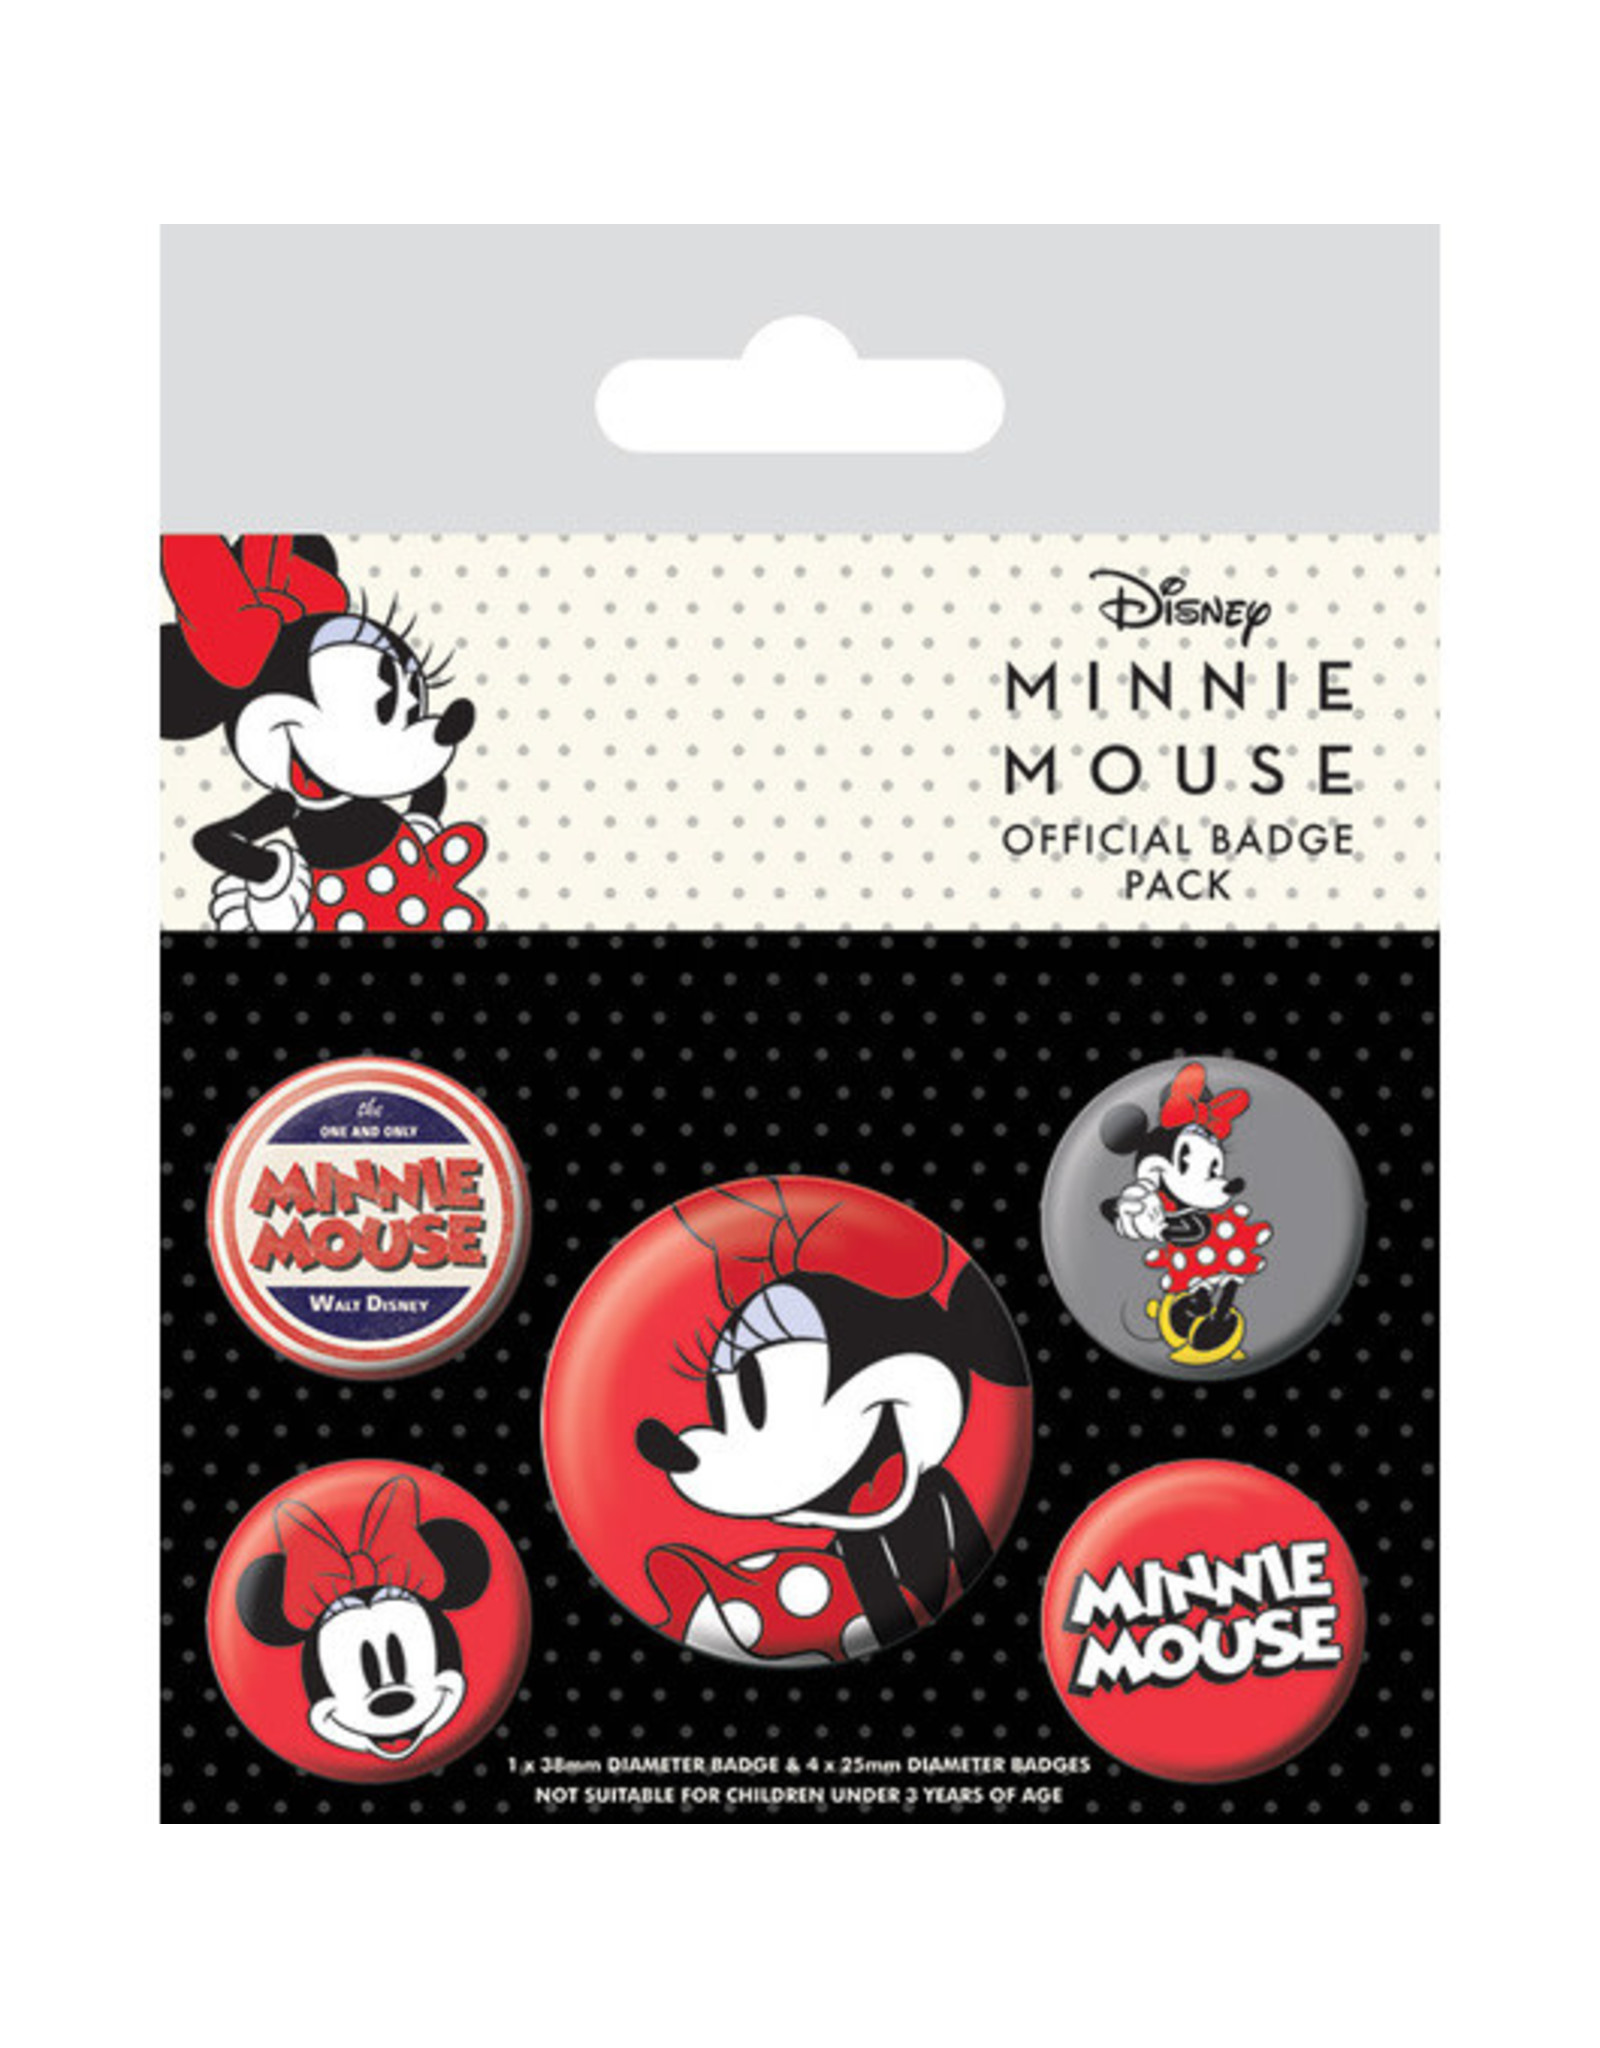 MINNIE MOUSE 5-Pack Badges - Ver2